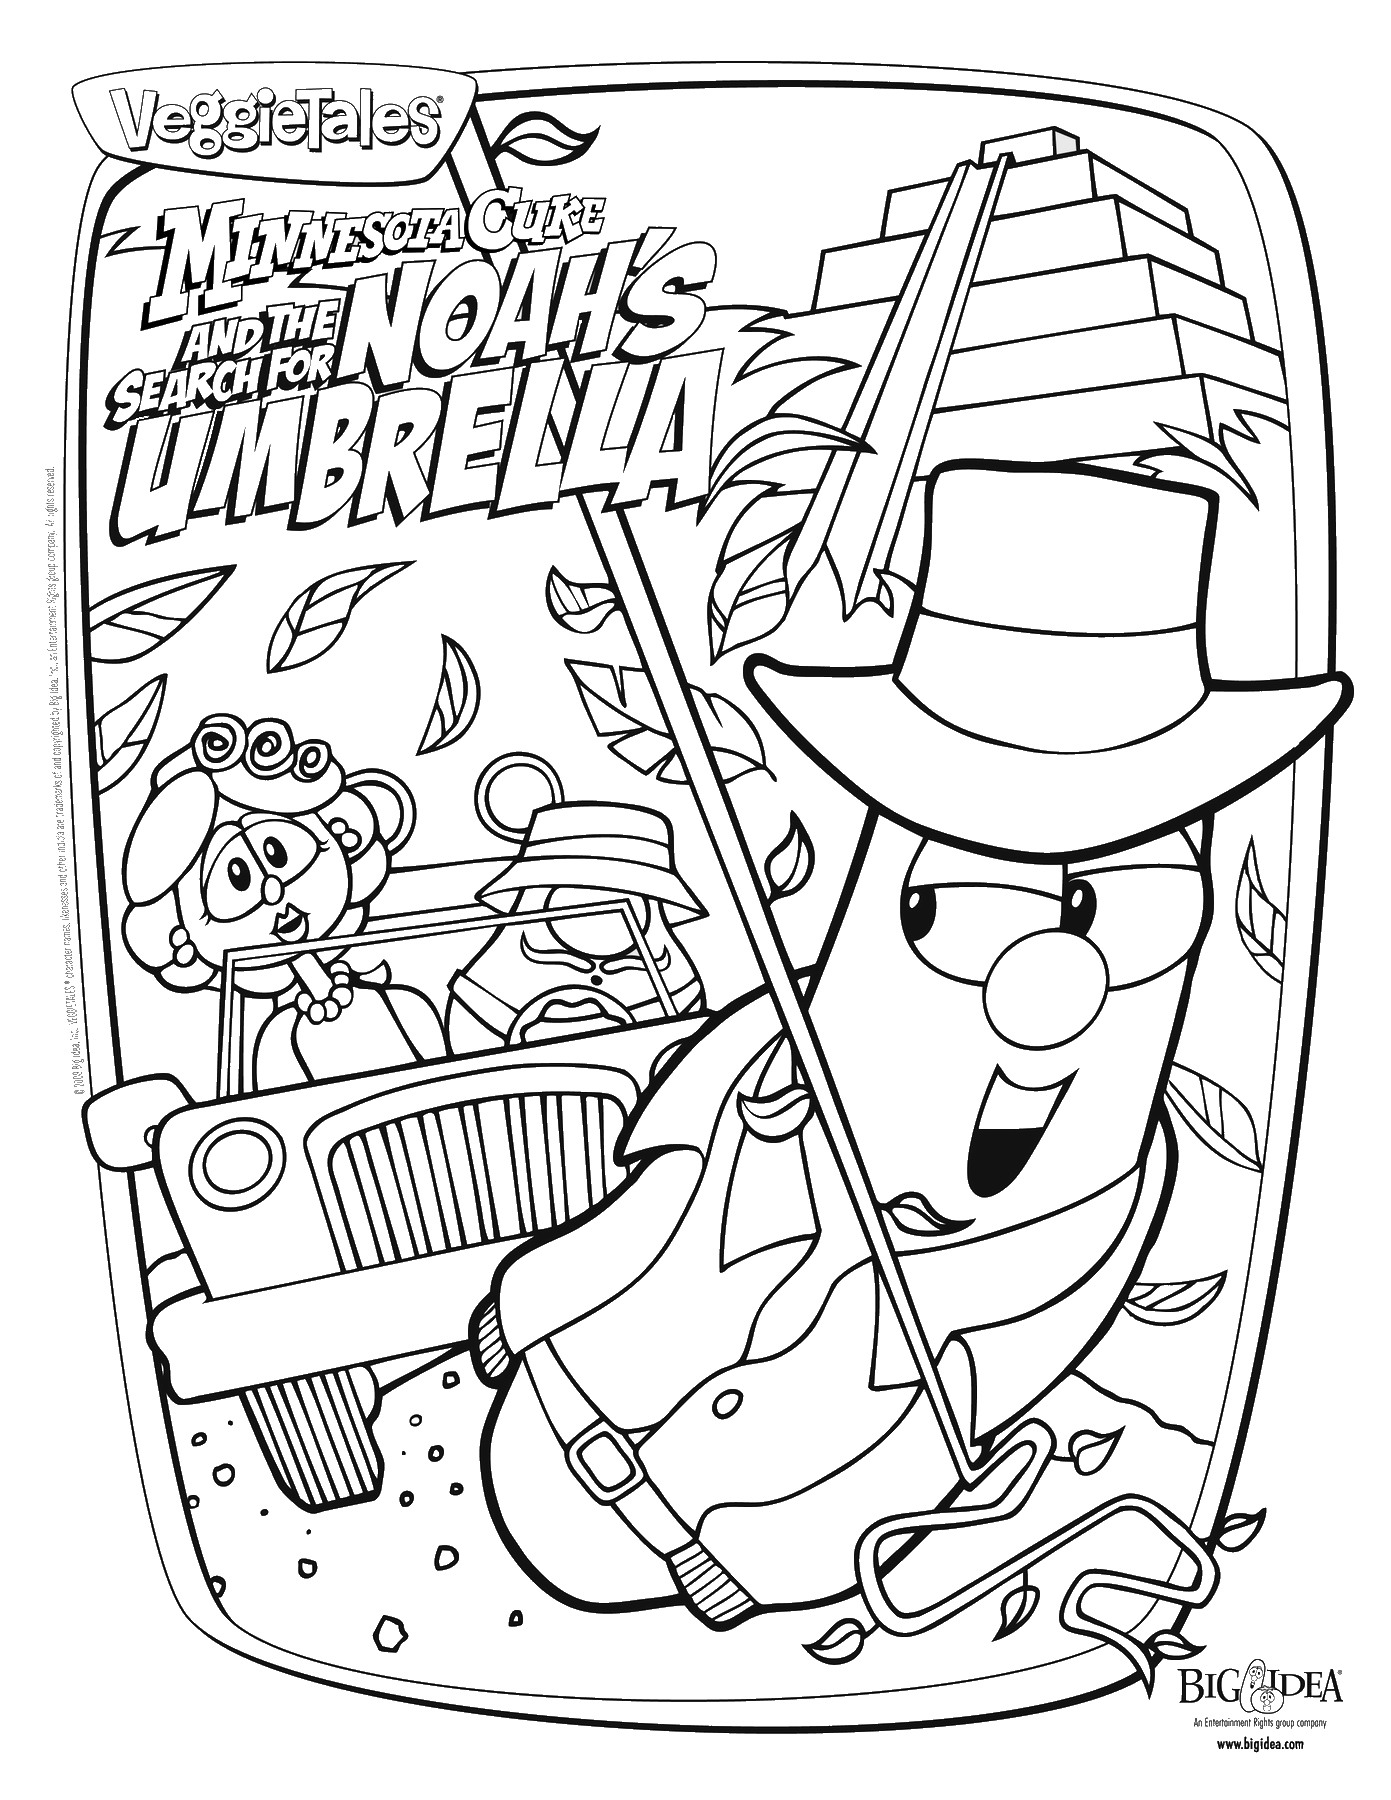 for Veggie tales printable coloring pages